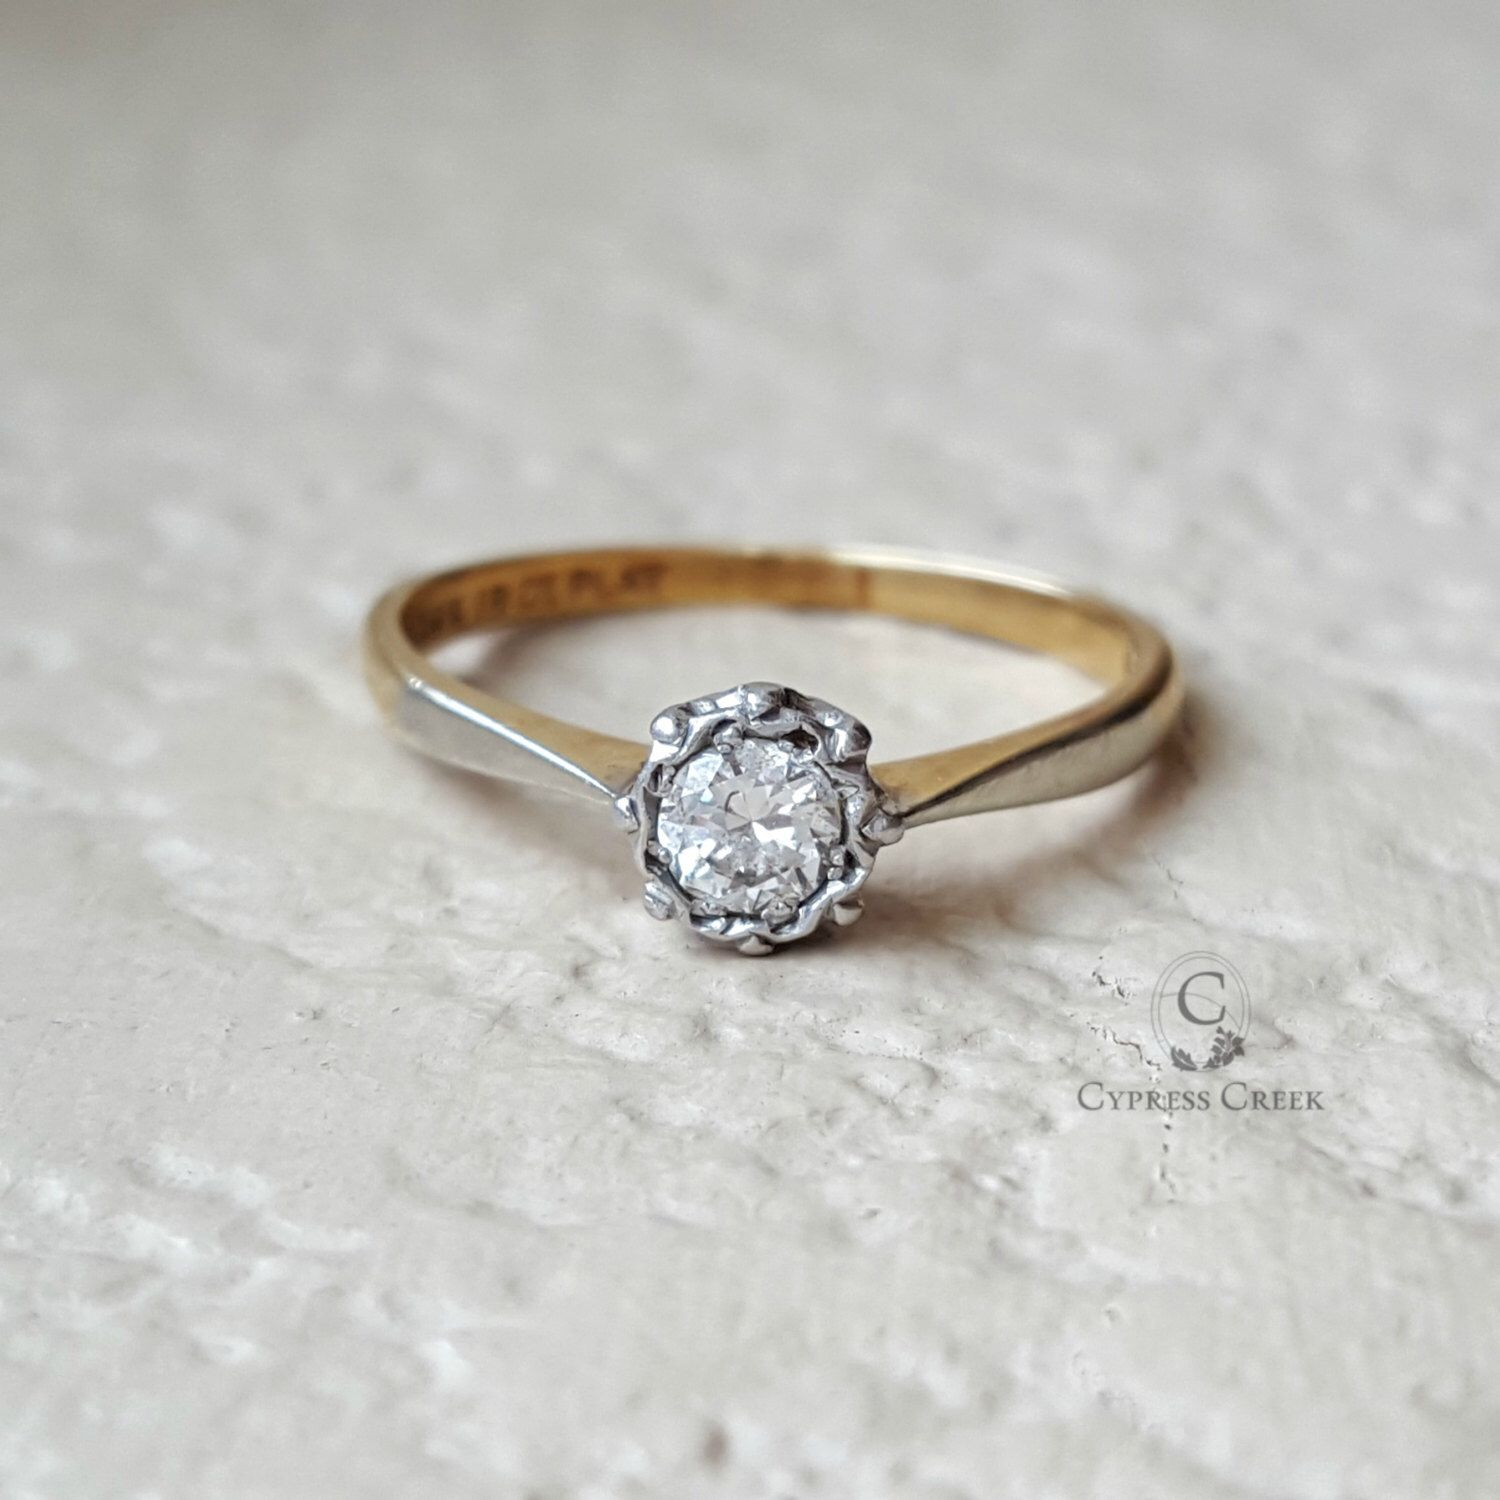 1910 Antique 35 ct Diamond Engagement Wedding Ring with 18k Gold